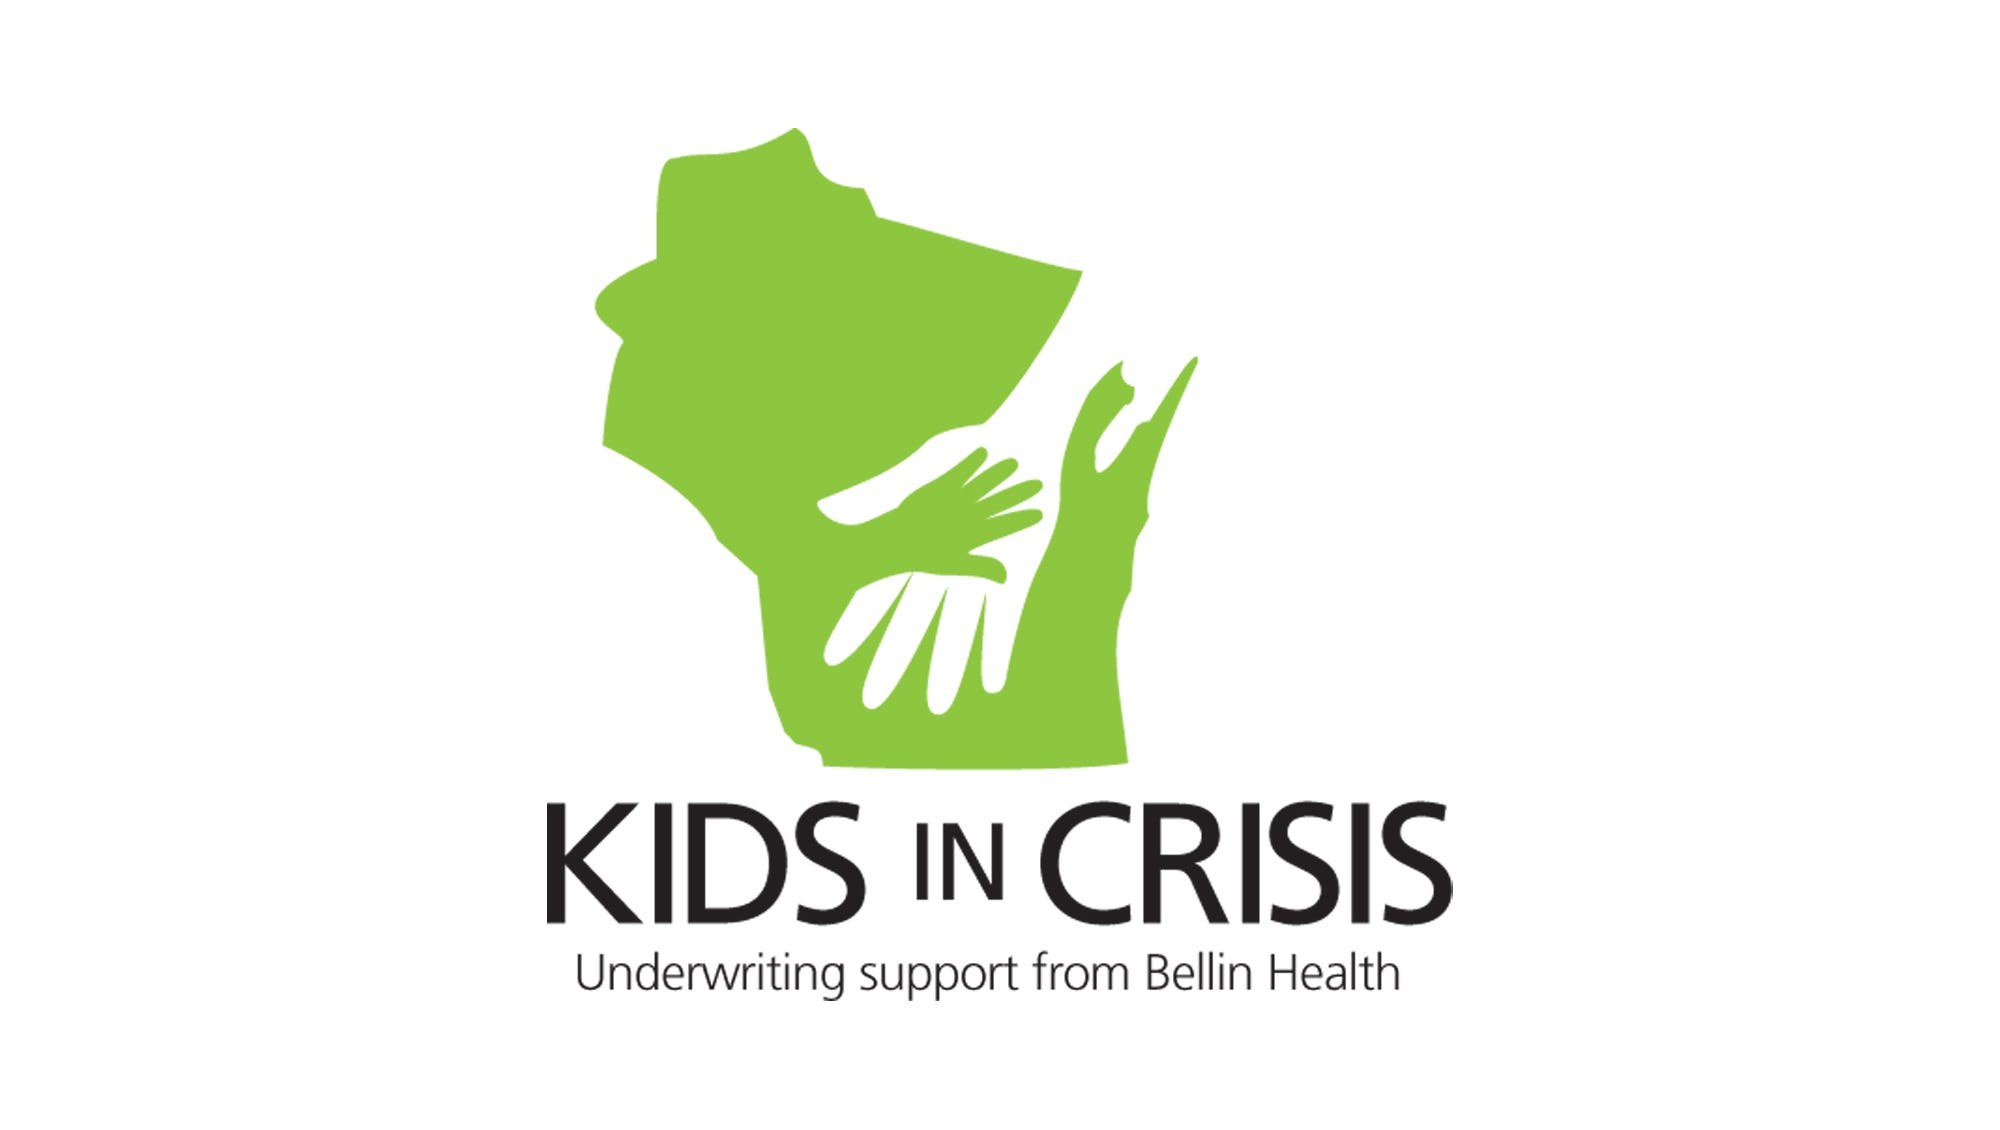 Green Bay Town Hall: Join our Kids in Crisis town hall Thursday in Green Bay